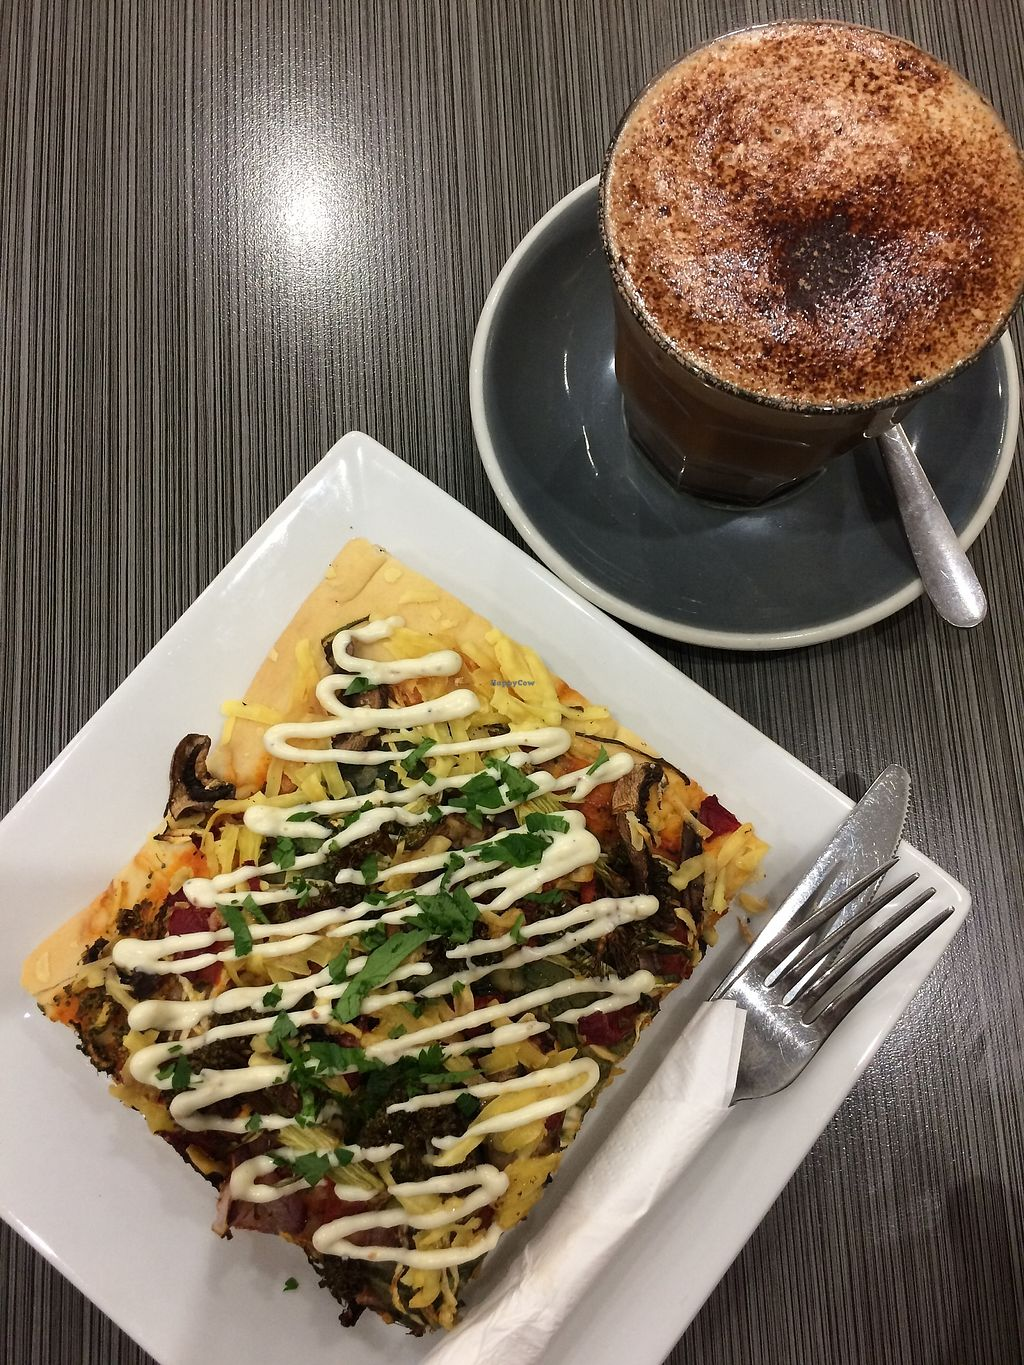 "Photo of Watson's Eatery  by <a href=""/members/profile/peasandunderstanding"">peasandunderstanding</a> <br/>Vegan pizza and superb mocha!  <br/> April 17, 2018  - <a href='/contact/abuse/image/102038/387267'>Report</a>"